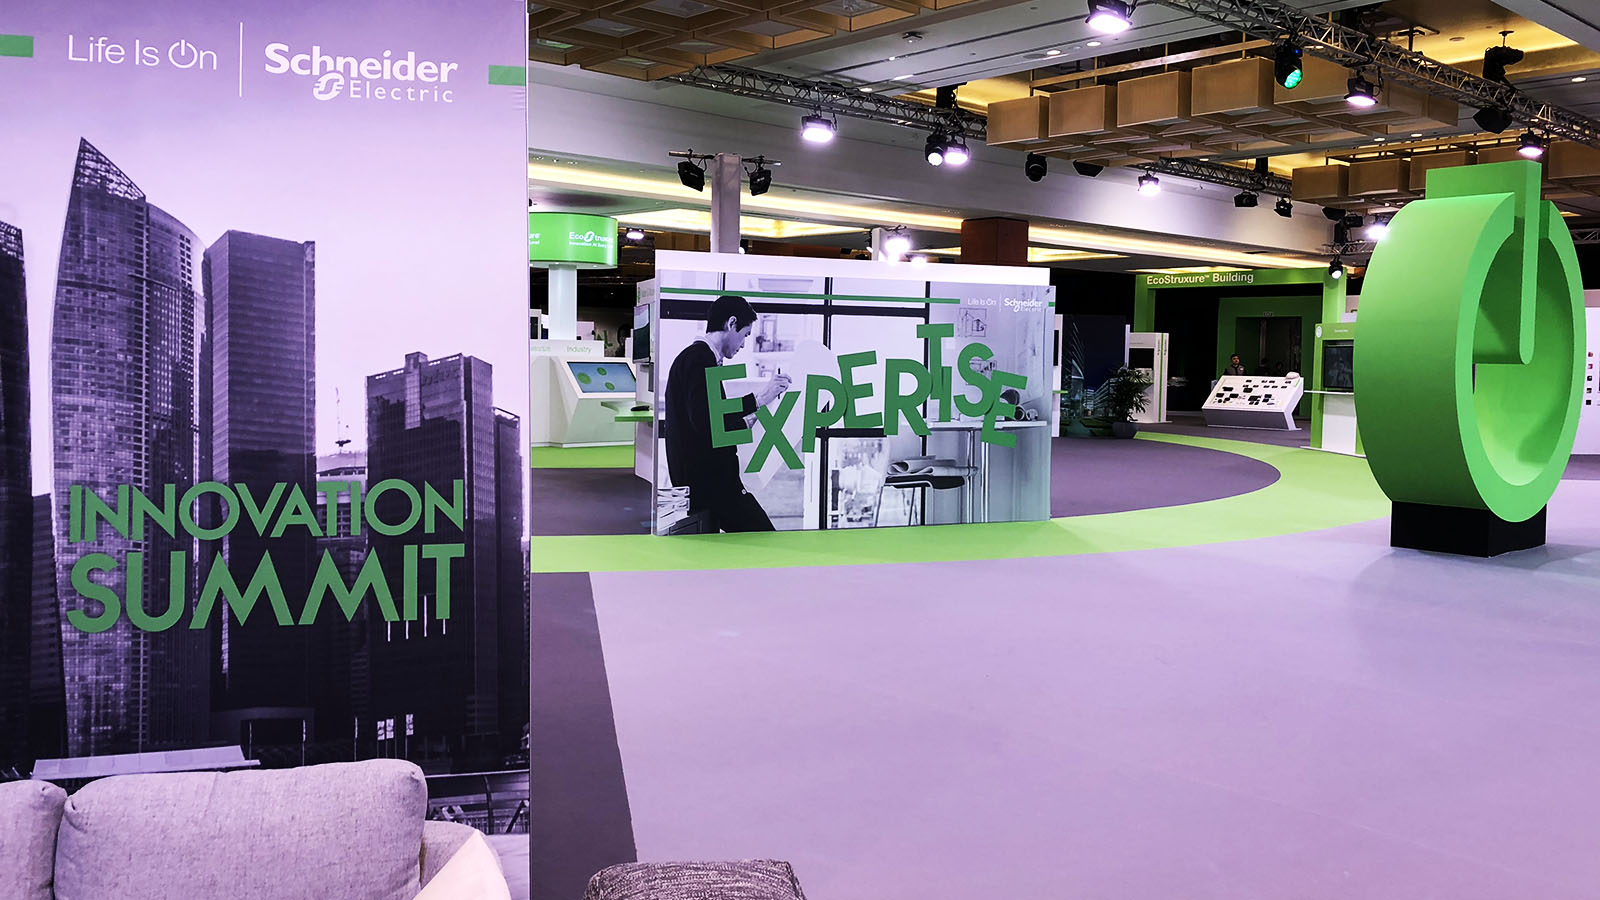 Schneider Electric Innovation Summit Singapore Banner